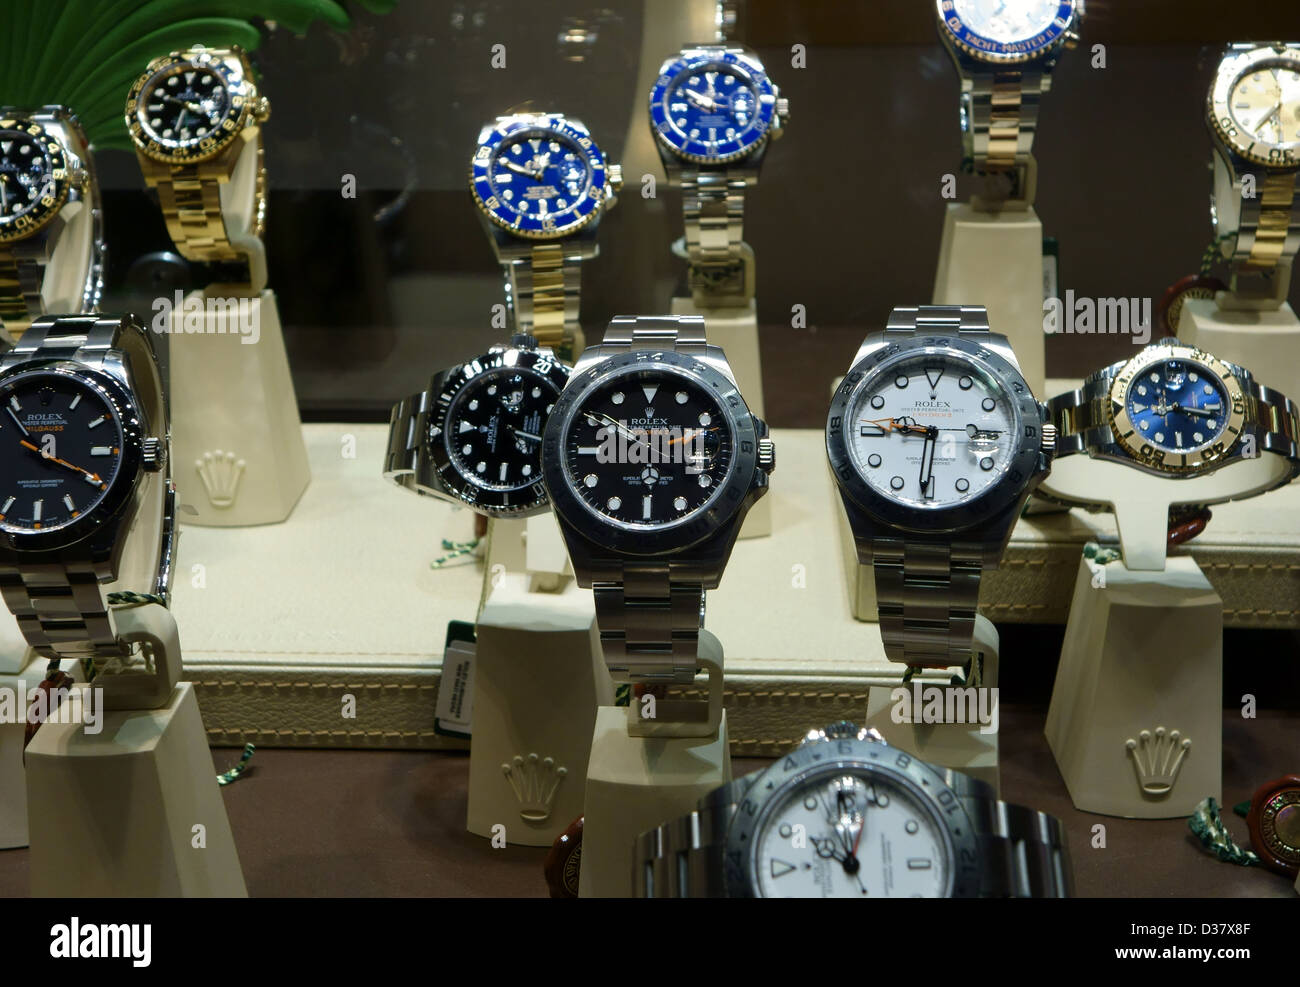 51cb904e7ab Rolex Store Stock Photos   Rolex Store Stock Images - Page 4 - Alamy